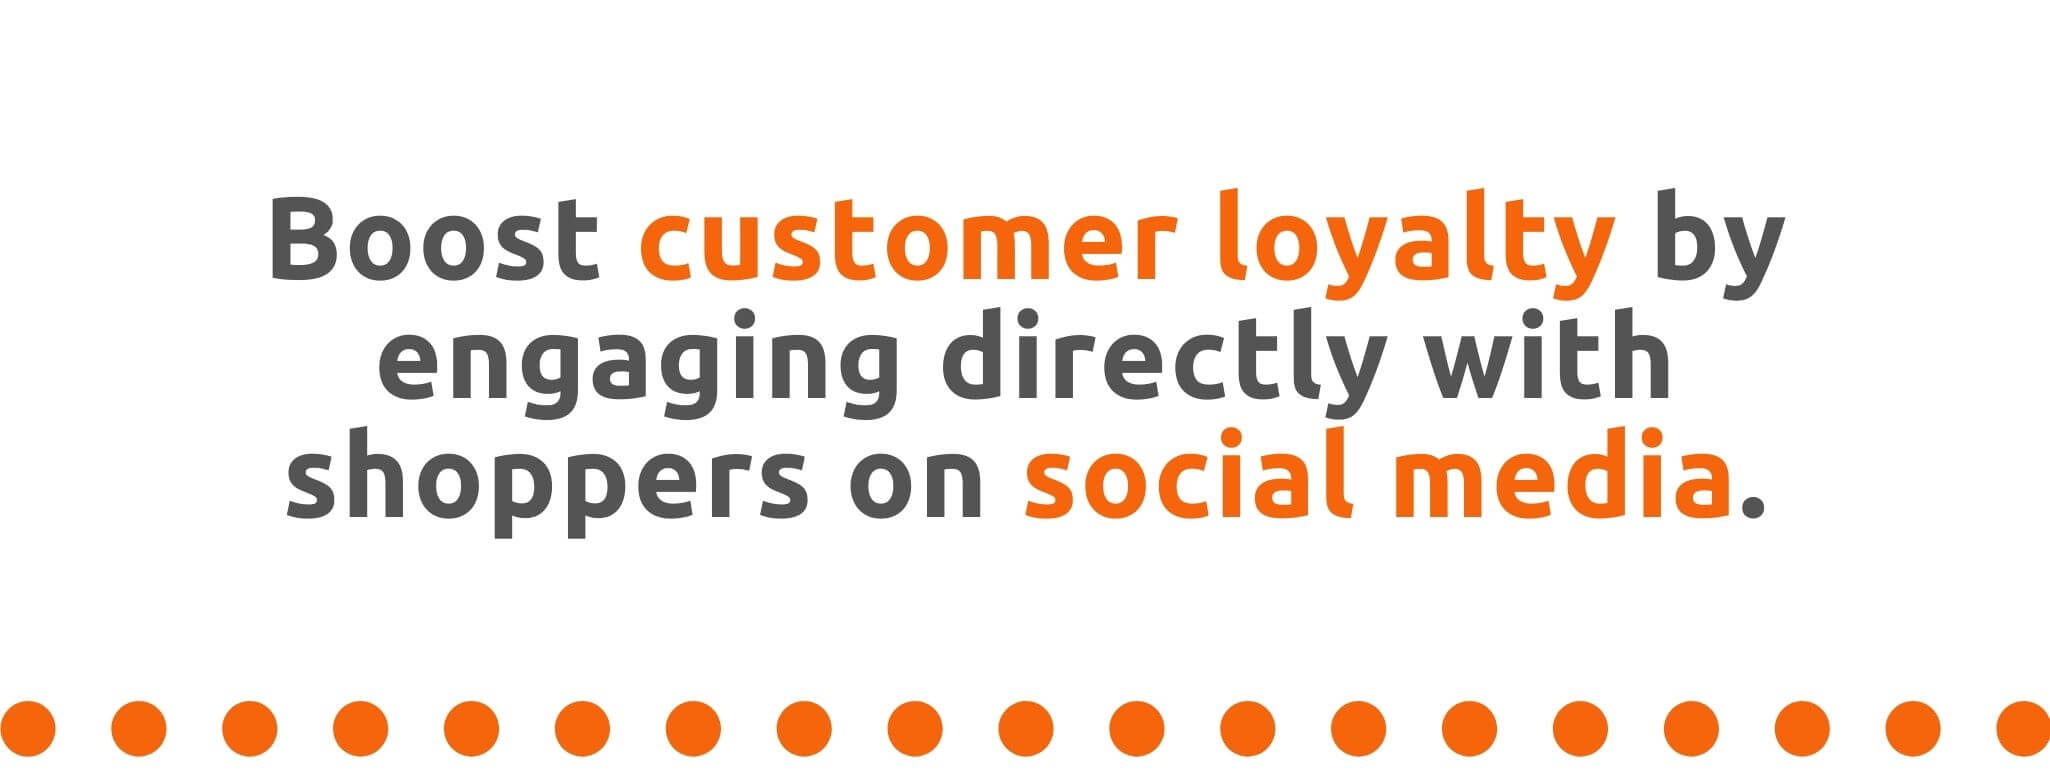 Boost customer loyalty by engaging directly with shoppers on social media - 21 Ways to Encourage Customer Loyalty - Replyco